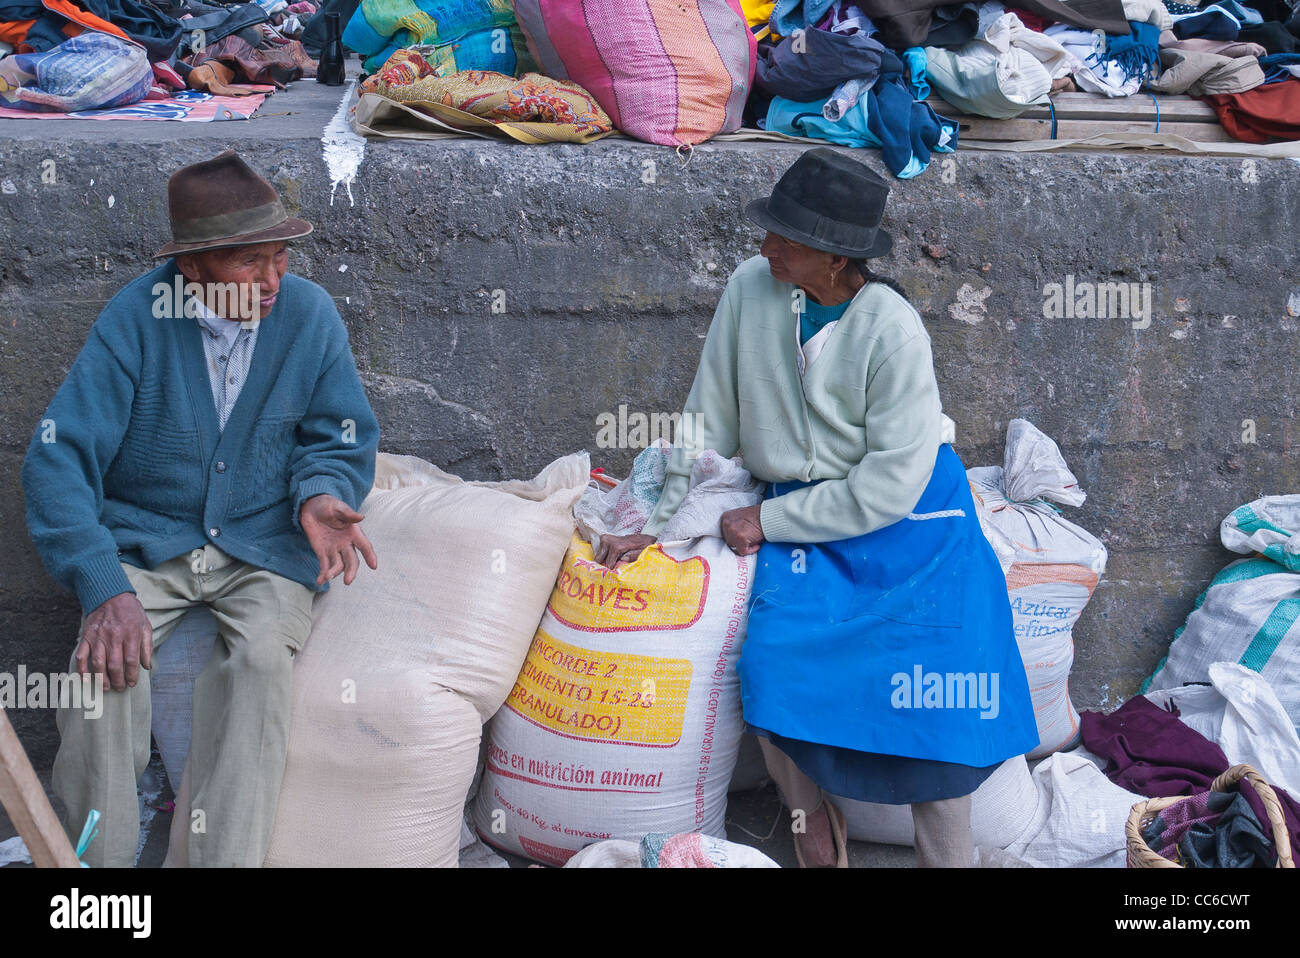 An elderly man and wife of Andean Indian descent sit on sacks of grain in the famous market town of Saquisili, Ecuador. - Stock Image